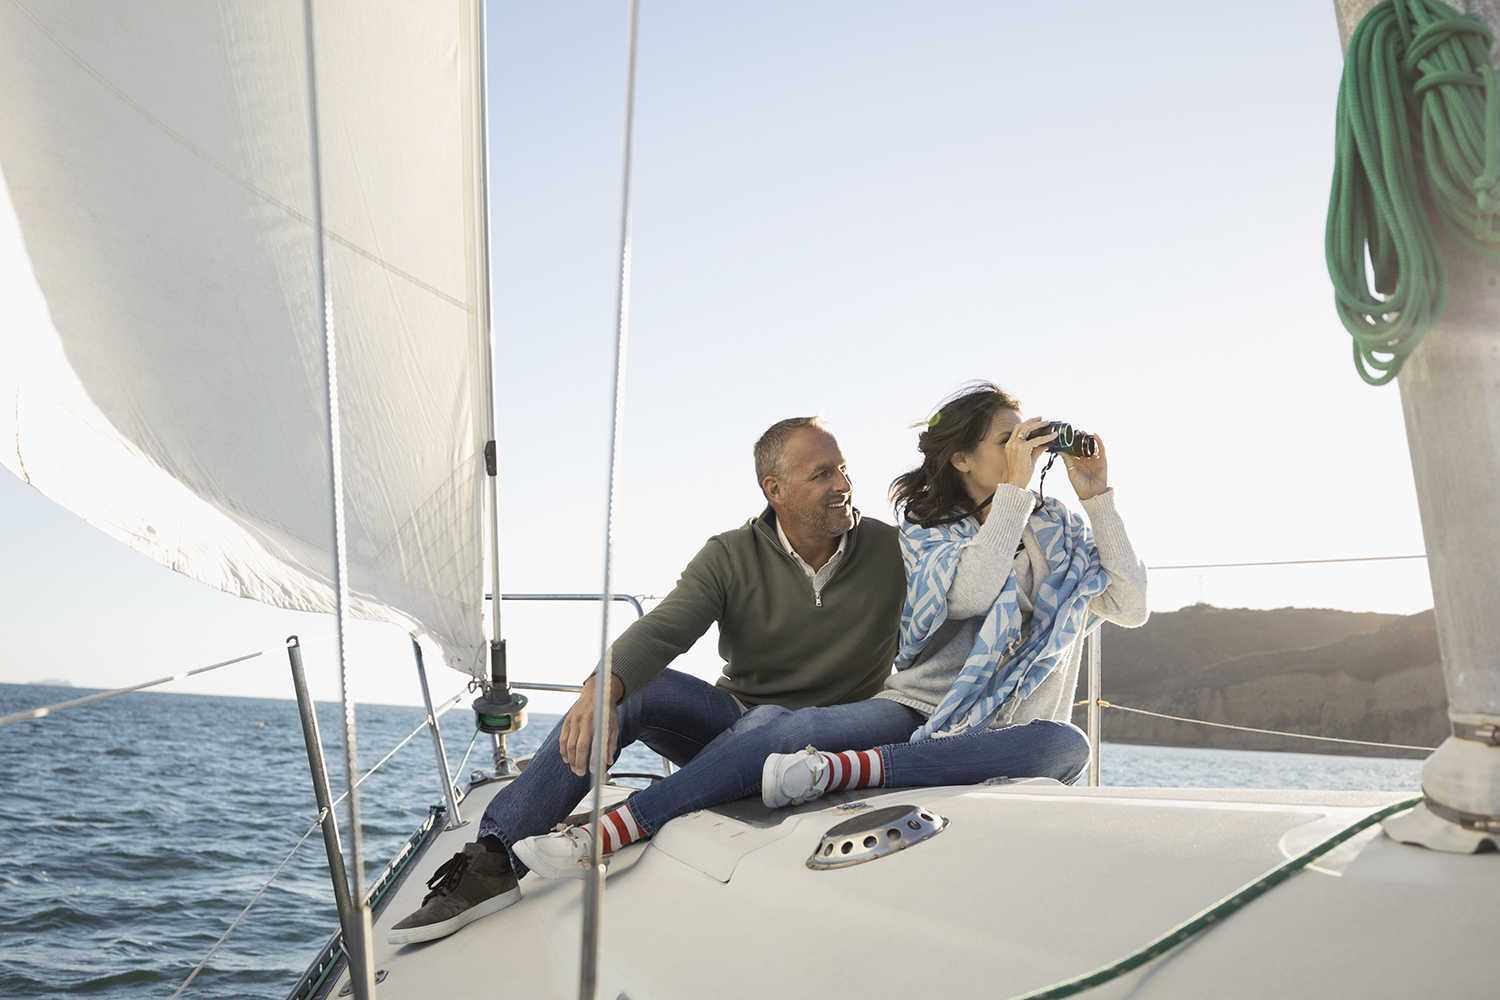 Mature couple using camera on sunny sailboat